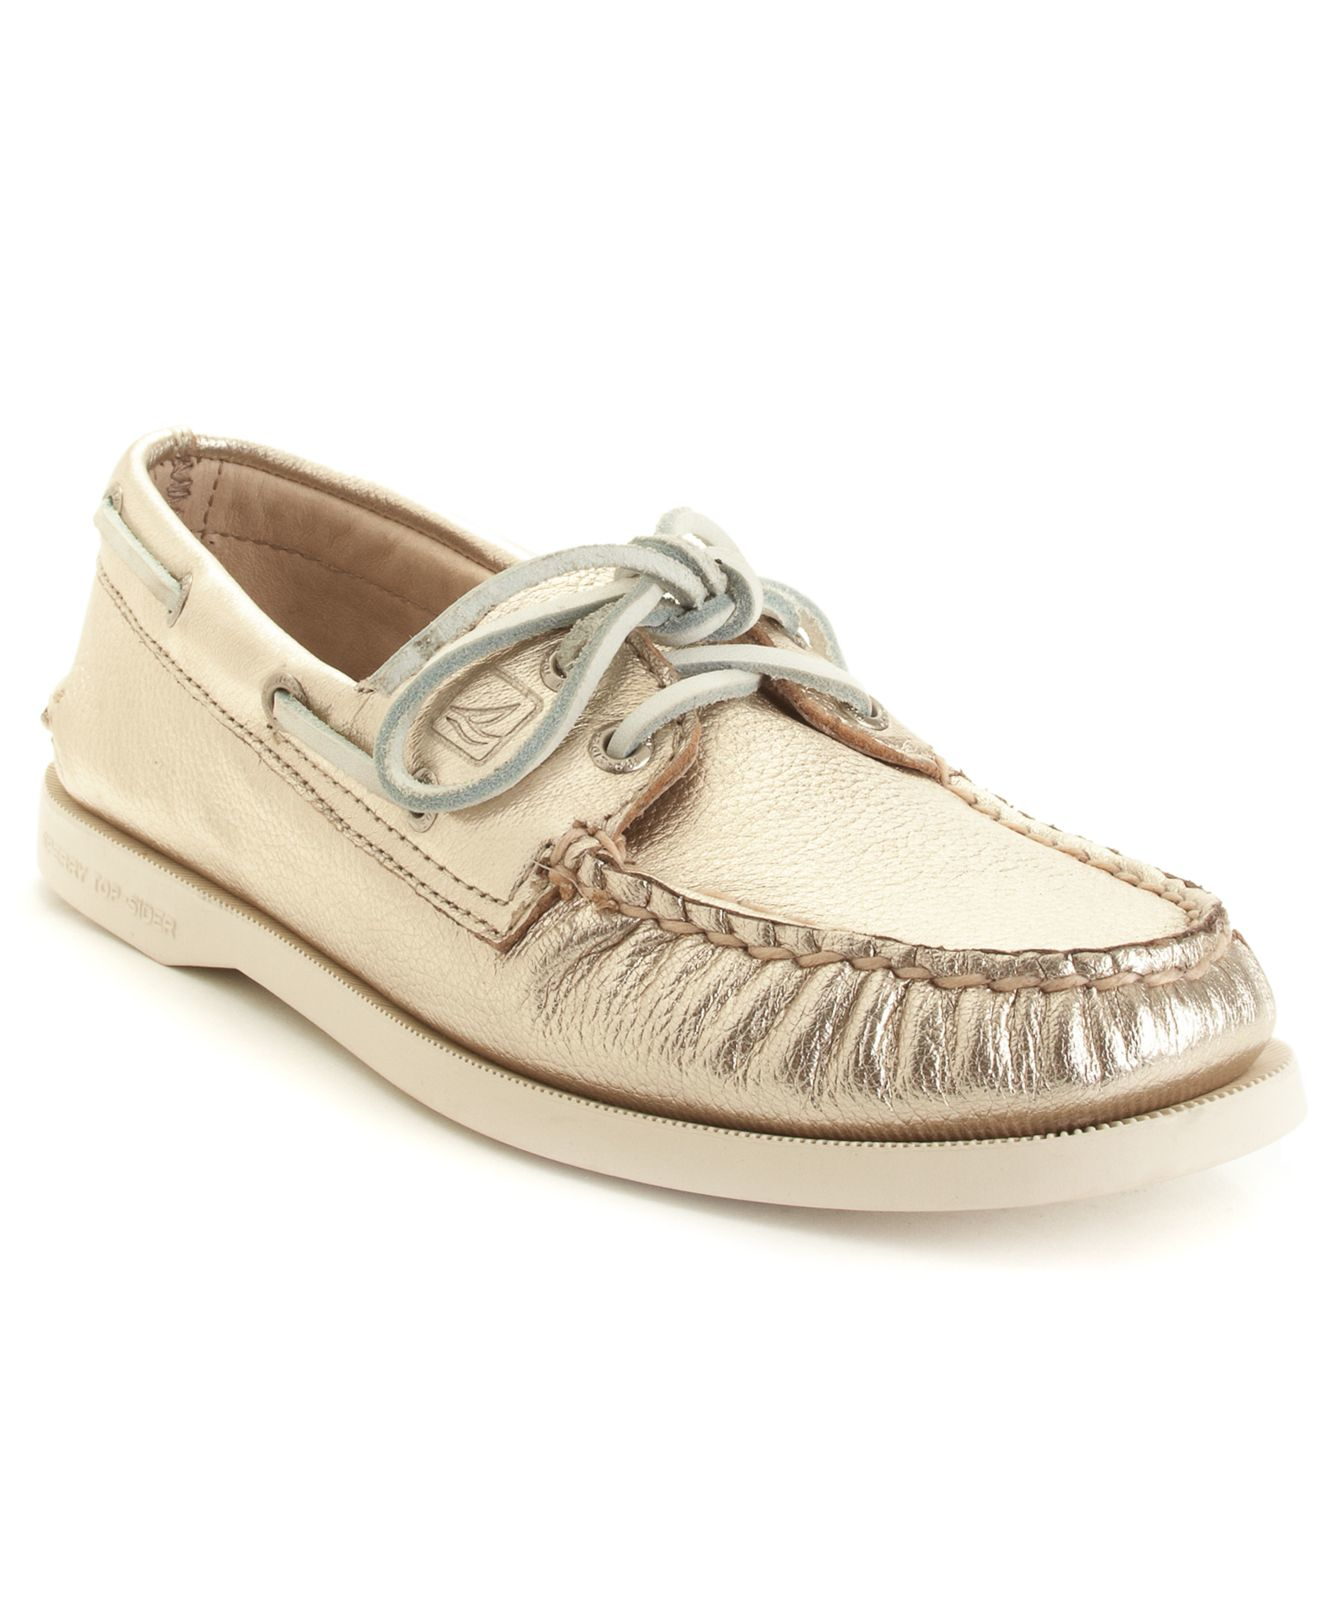 Sperry Women S A O Boat Shoes